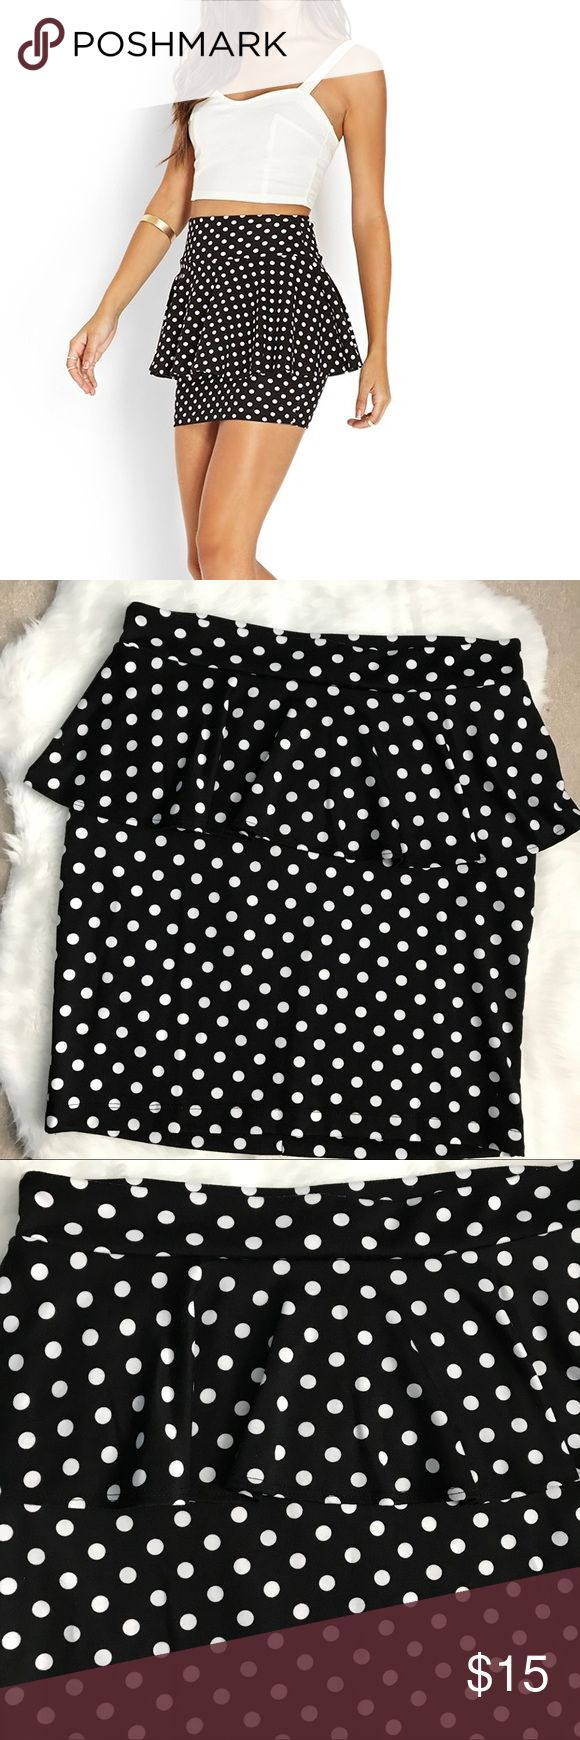 Polka dot peplum skirt *Pre loved, only worn once or twice  *Black with white polka dots peplum skirt  *Slip on style  *Materials: 95% polyester, 5% spandex Dots Skirts